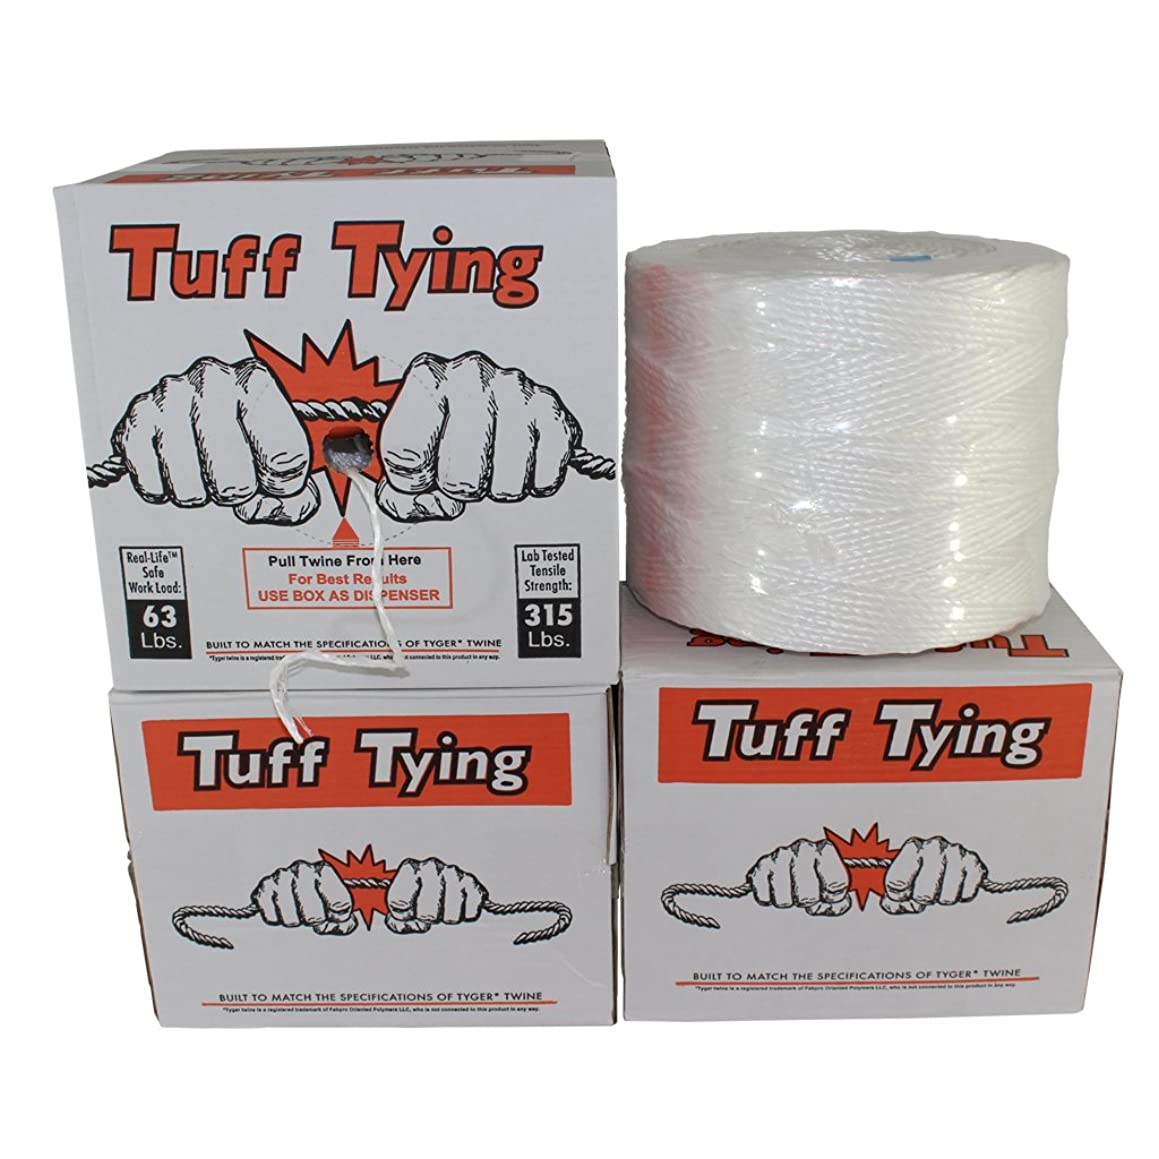 Polypropylene Twine (2 ply - 4200 feet) Tuff Tying Polypro Twine Industrial-Grade - SGT KNOTS - UV, Moisture, Chemical Protection - Commercial Bundling & Packaging - Center-Pull Box Dispenser (White)